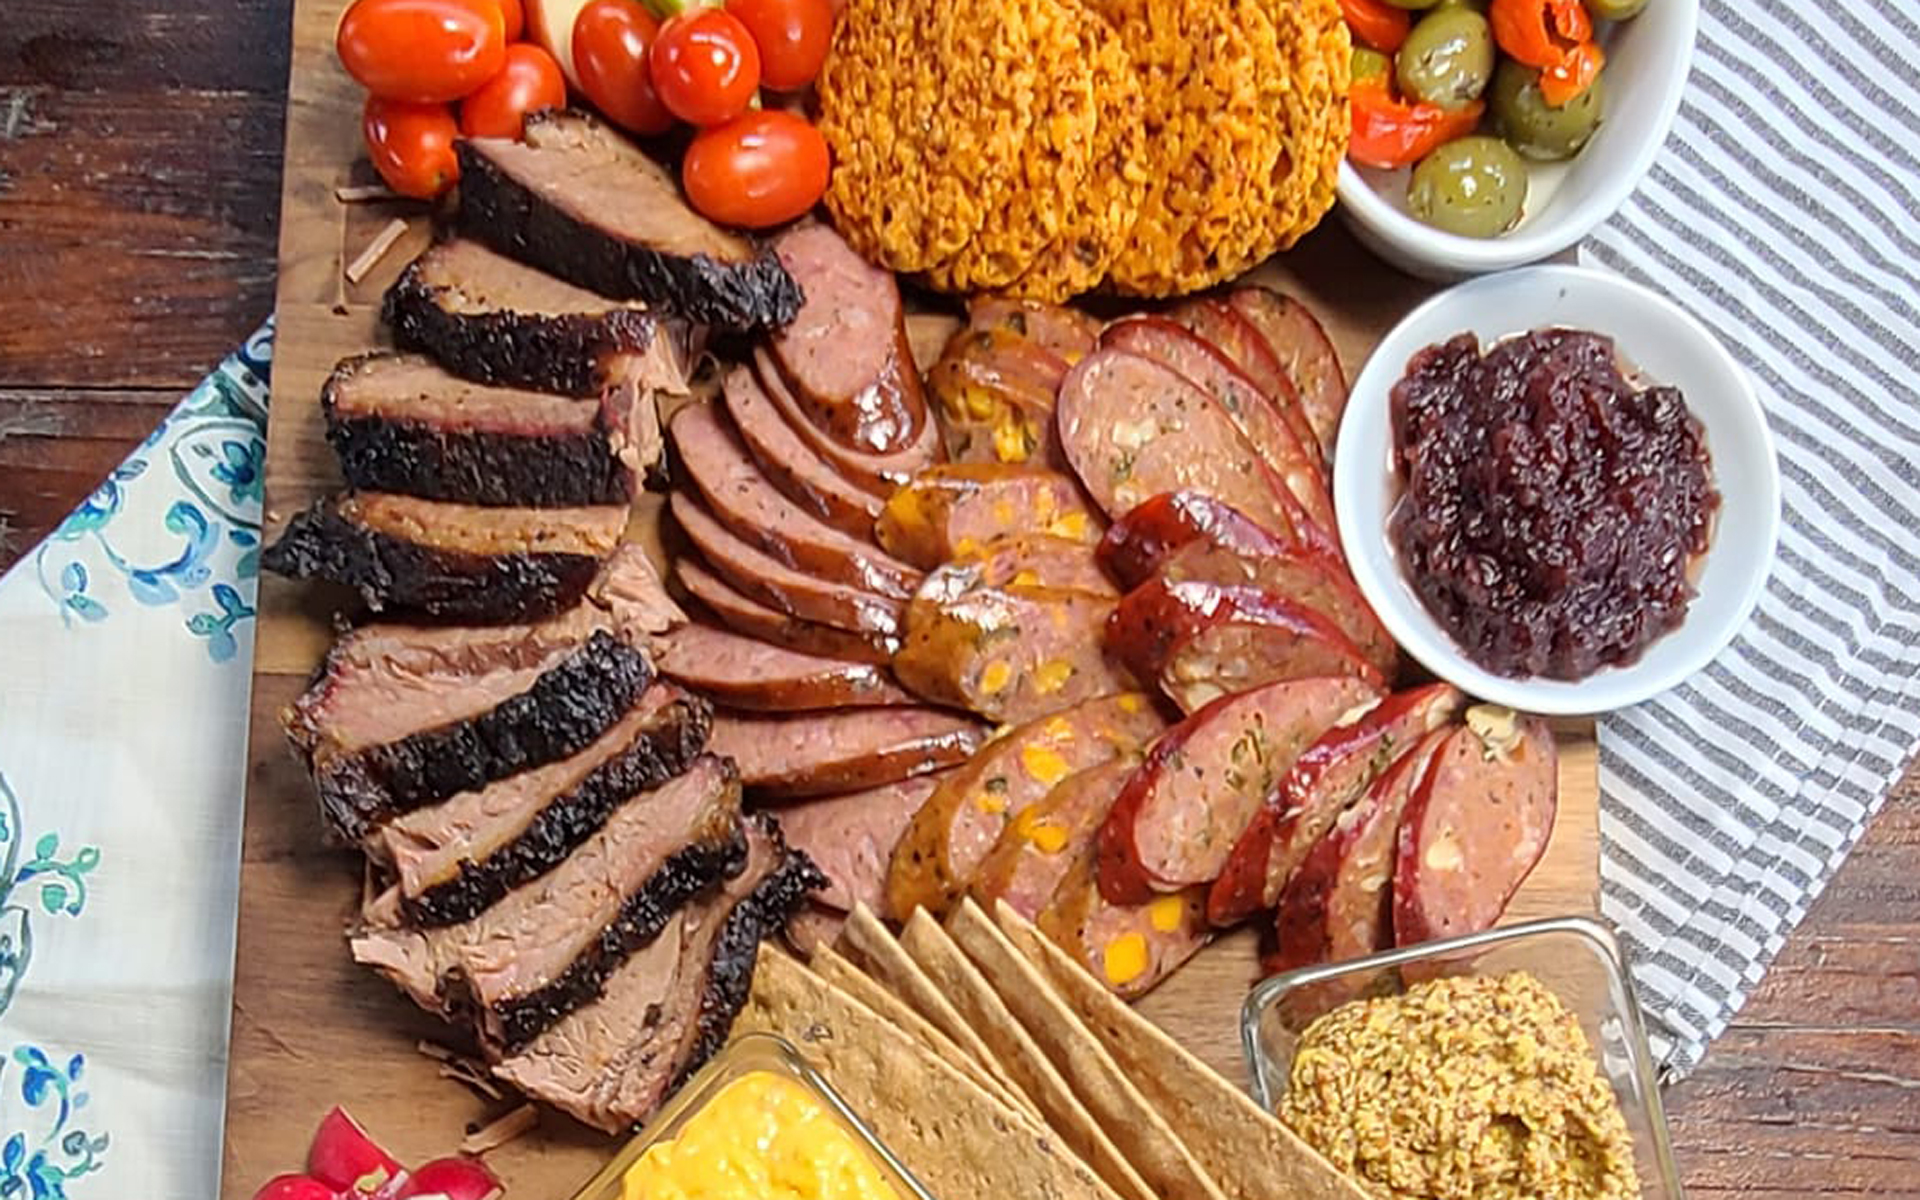 Dickey's Barbecue Pit in Granbury, TX at Restaurant.com